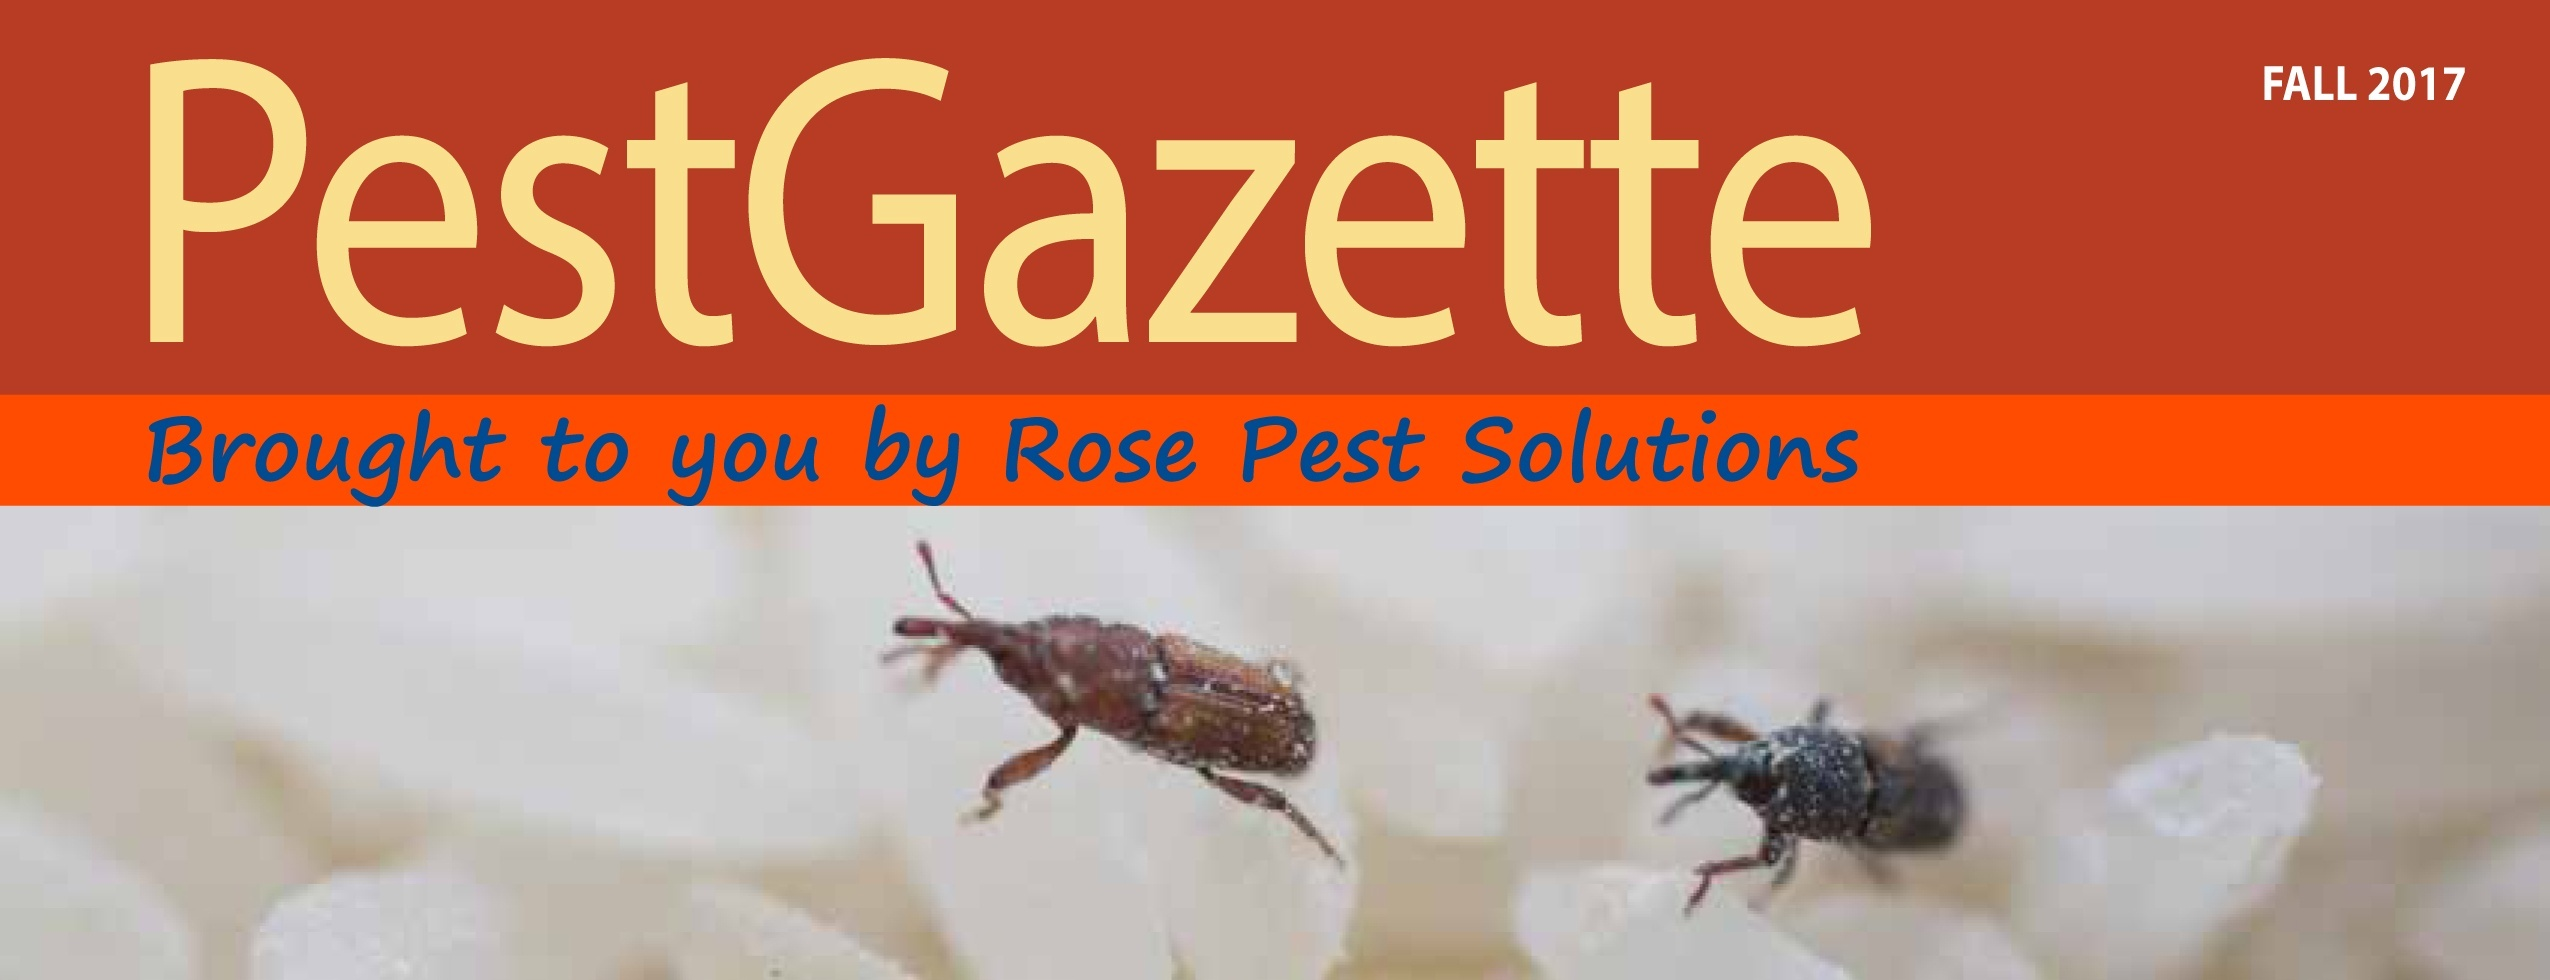 Download Rose Pest Solutions Fall 2017 Pest Gazette